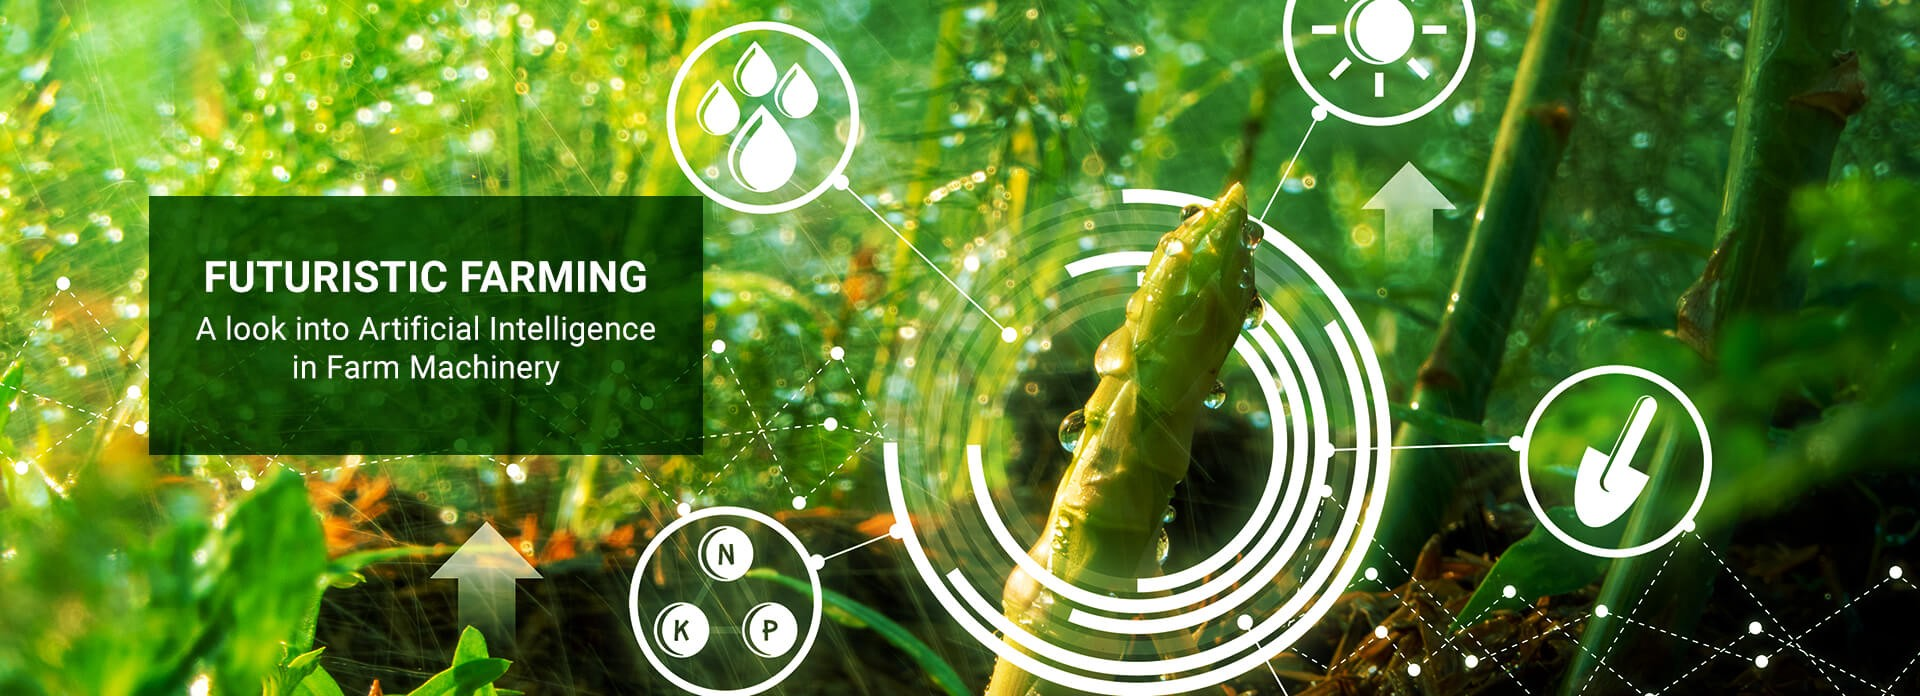 """Banner Image: """"Futuristic Farming—A Look into Artificial Intelligence in Farm Machinery"""""""